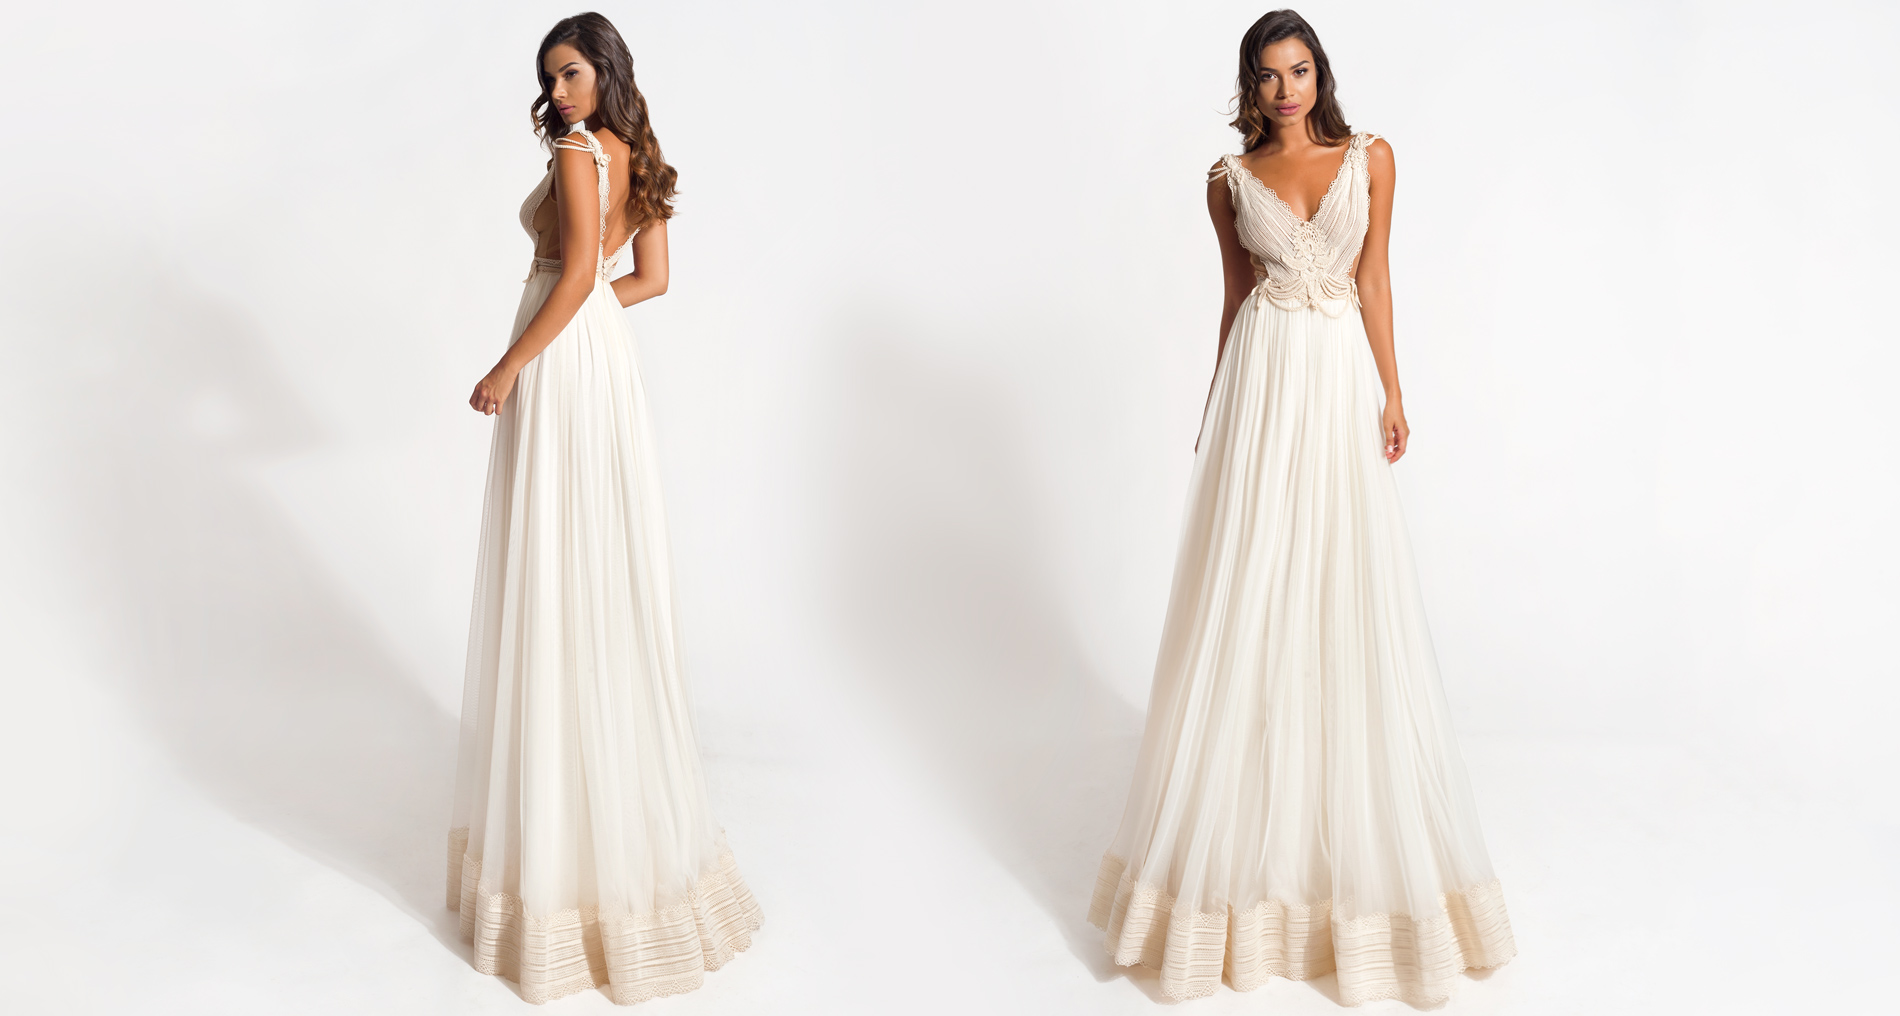 Aegle wedding dress from  Hellenic Vintage Origin Collection